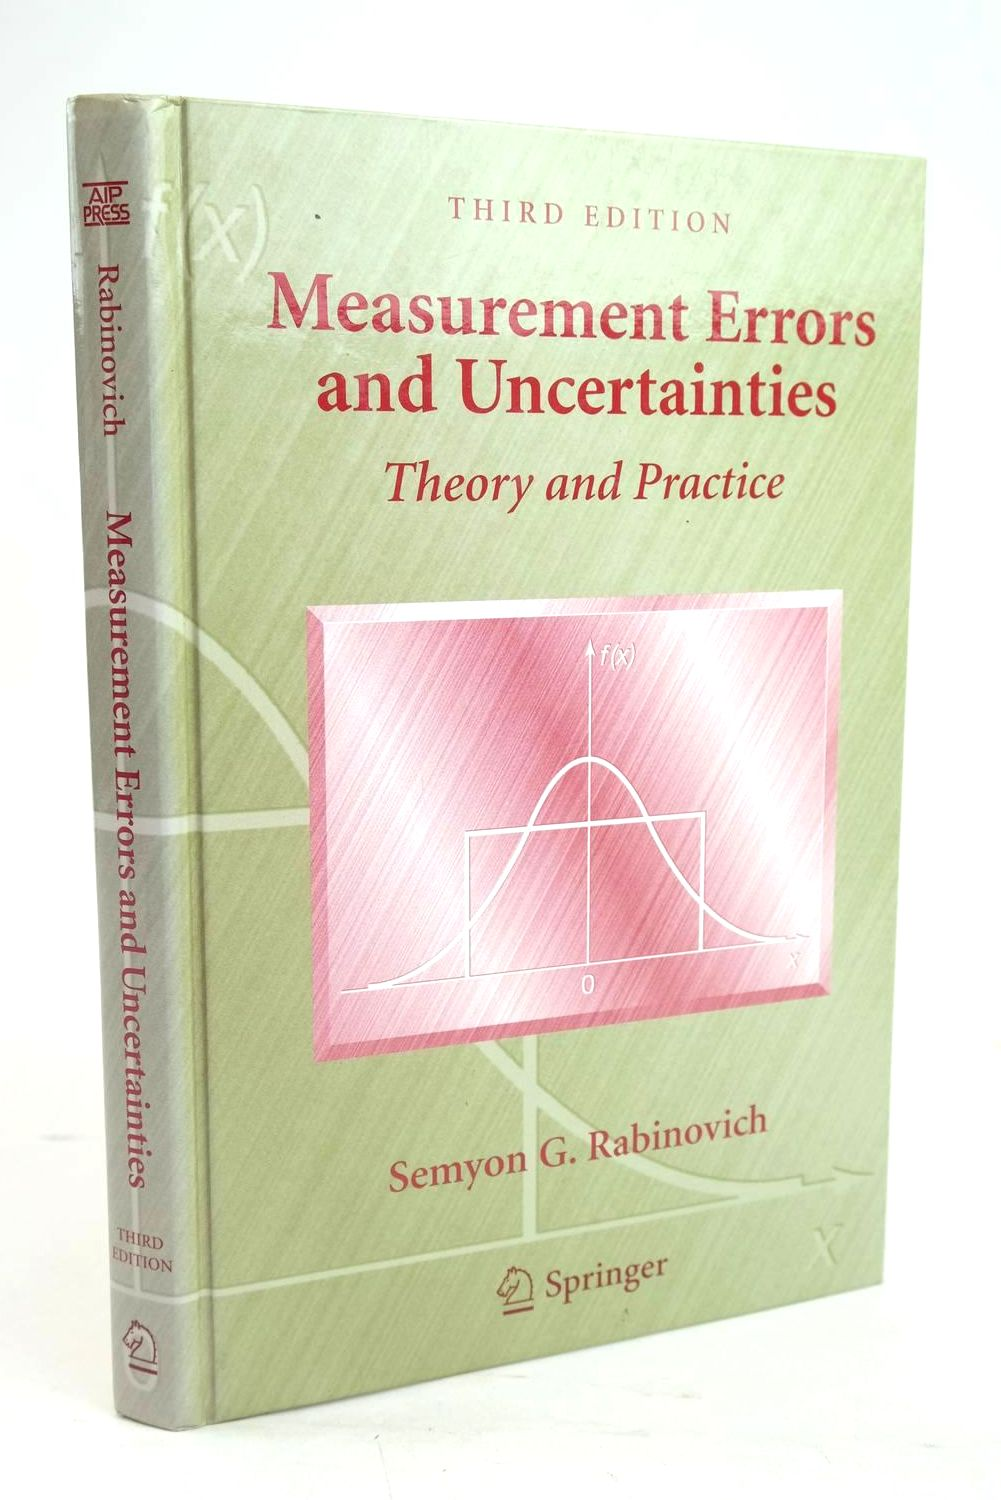 Photo of MEASUREMENT ERRORS AND UNCERTAINTIES - THEORY AND PRACTICE- Stock Number: 1319670